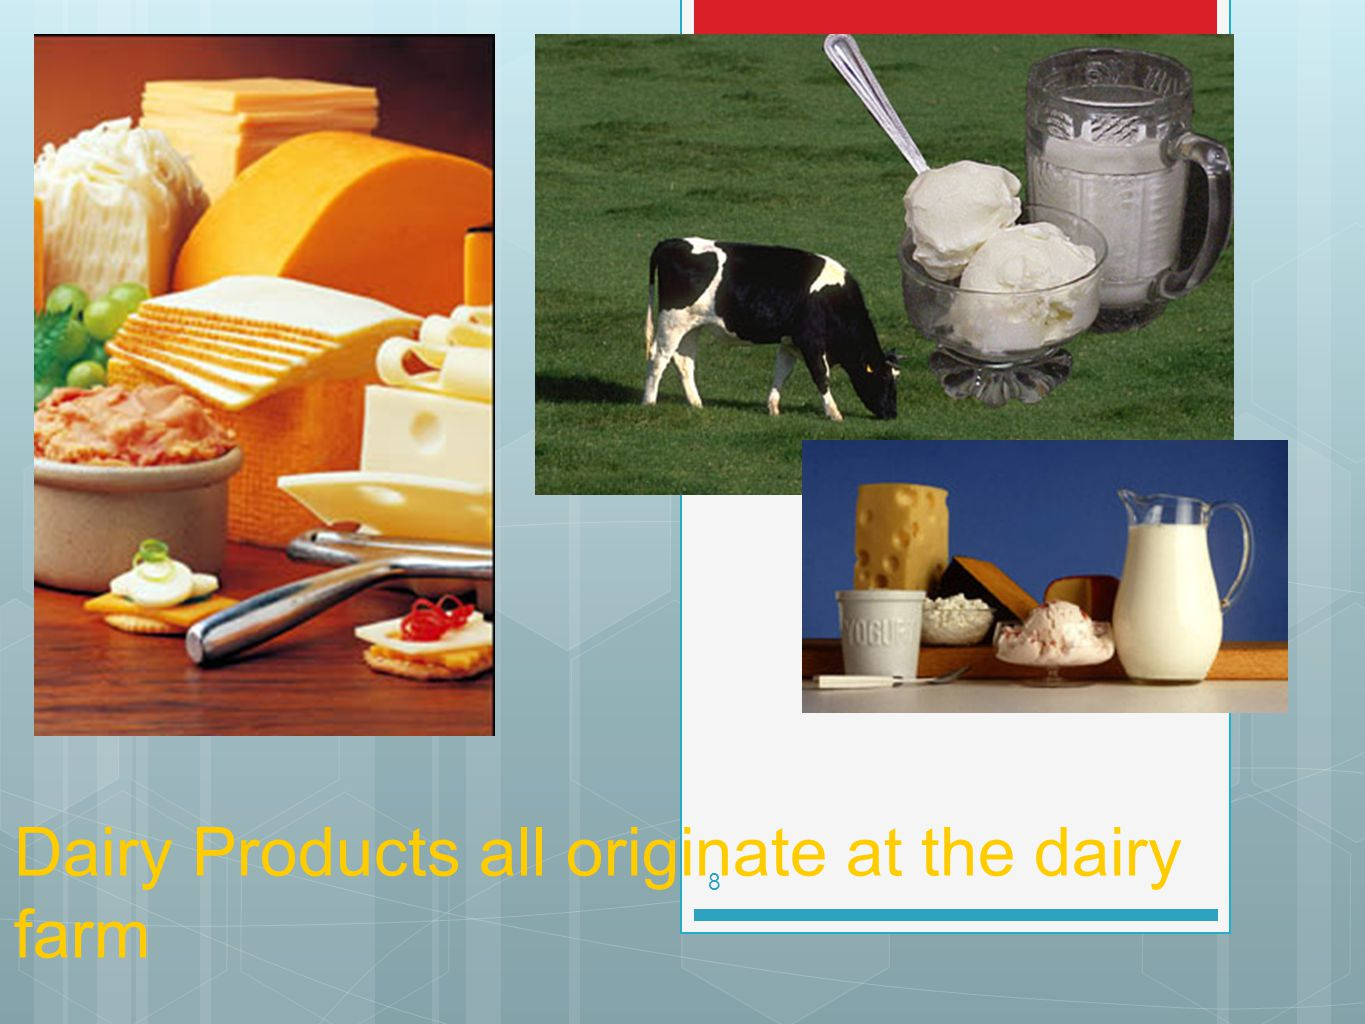 Dairy Products all originate at the dairy farm 8